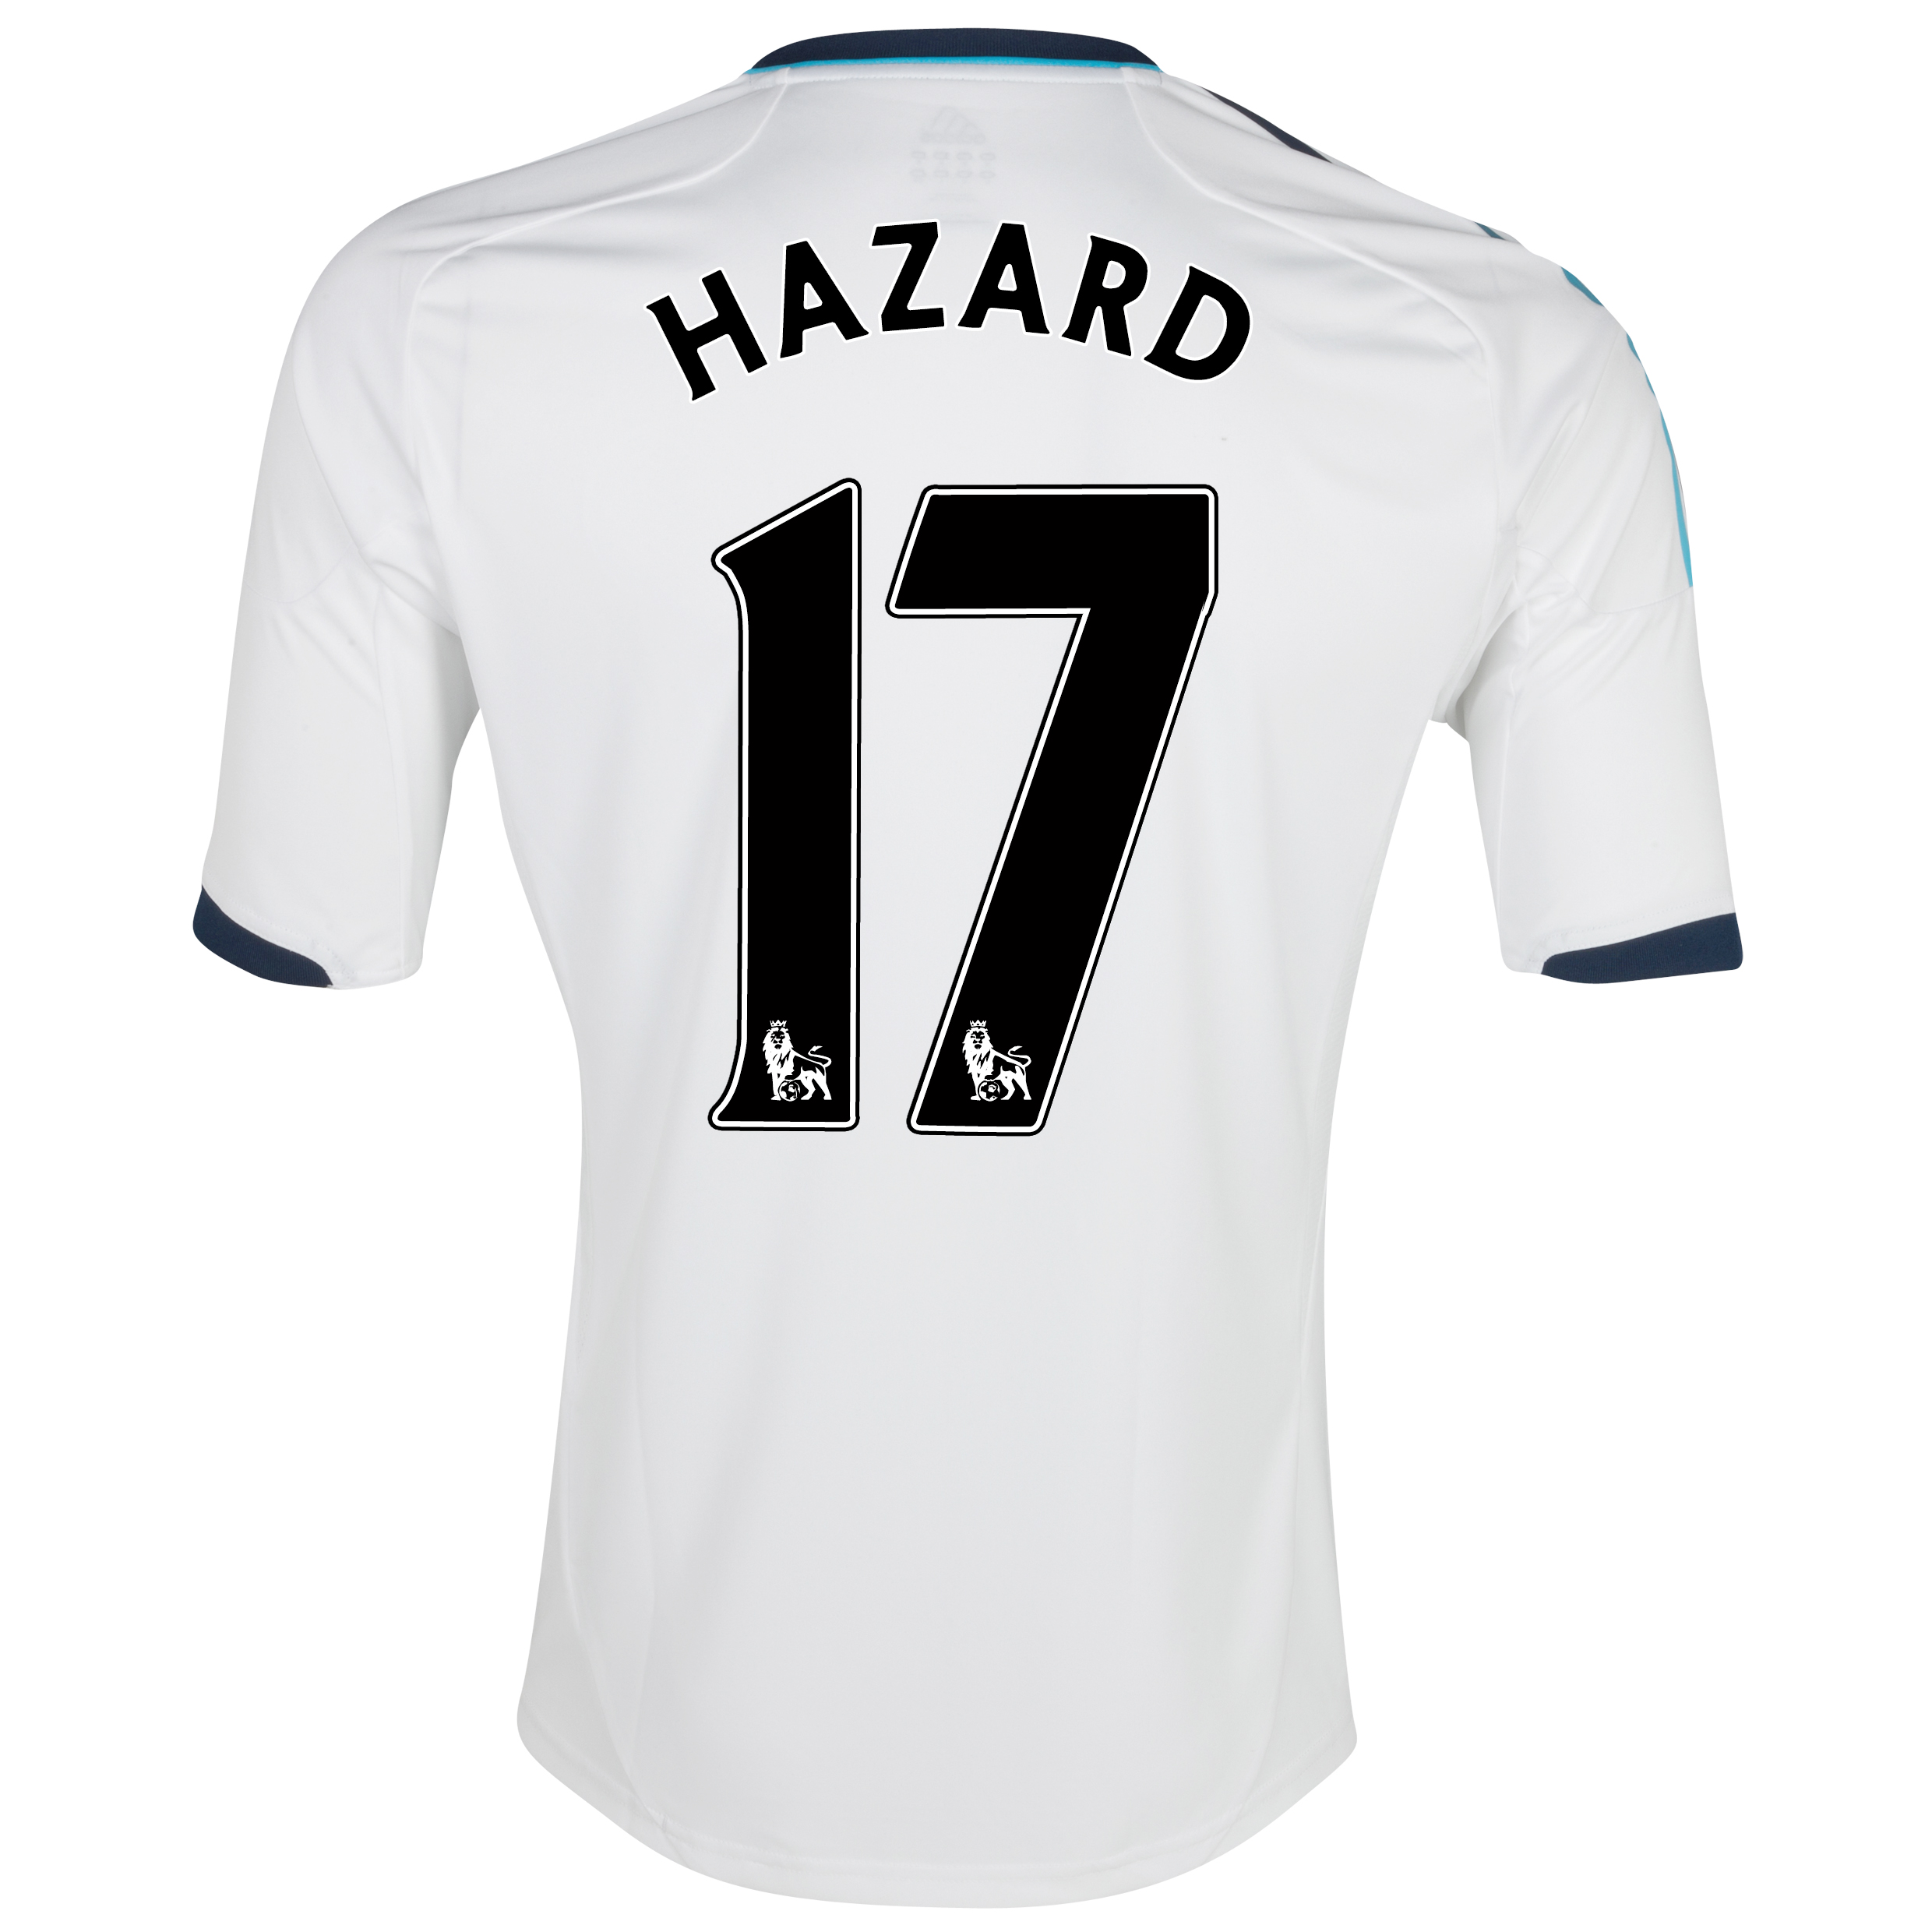 Chelsea Away Shirt 2012/13 with Hazard 17 printing